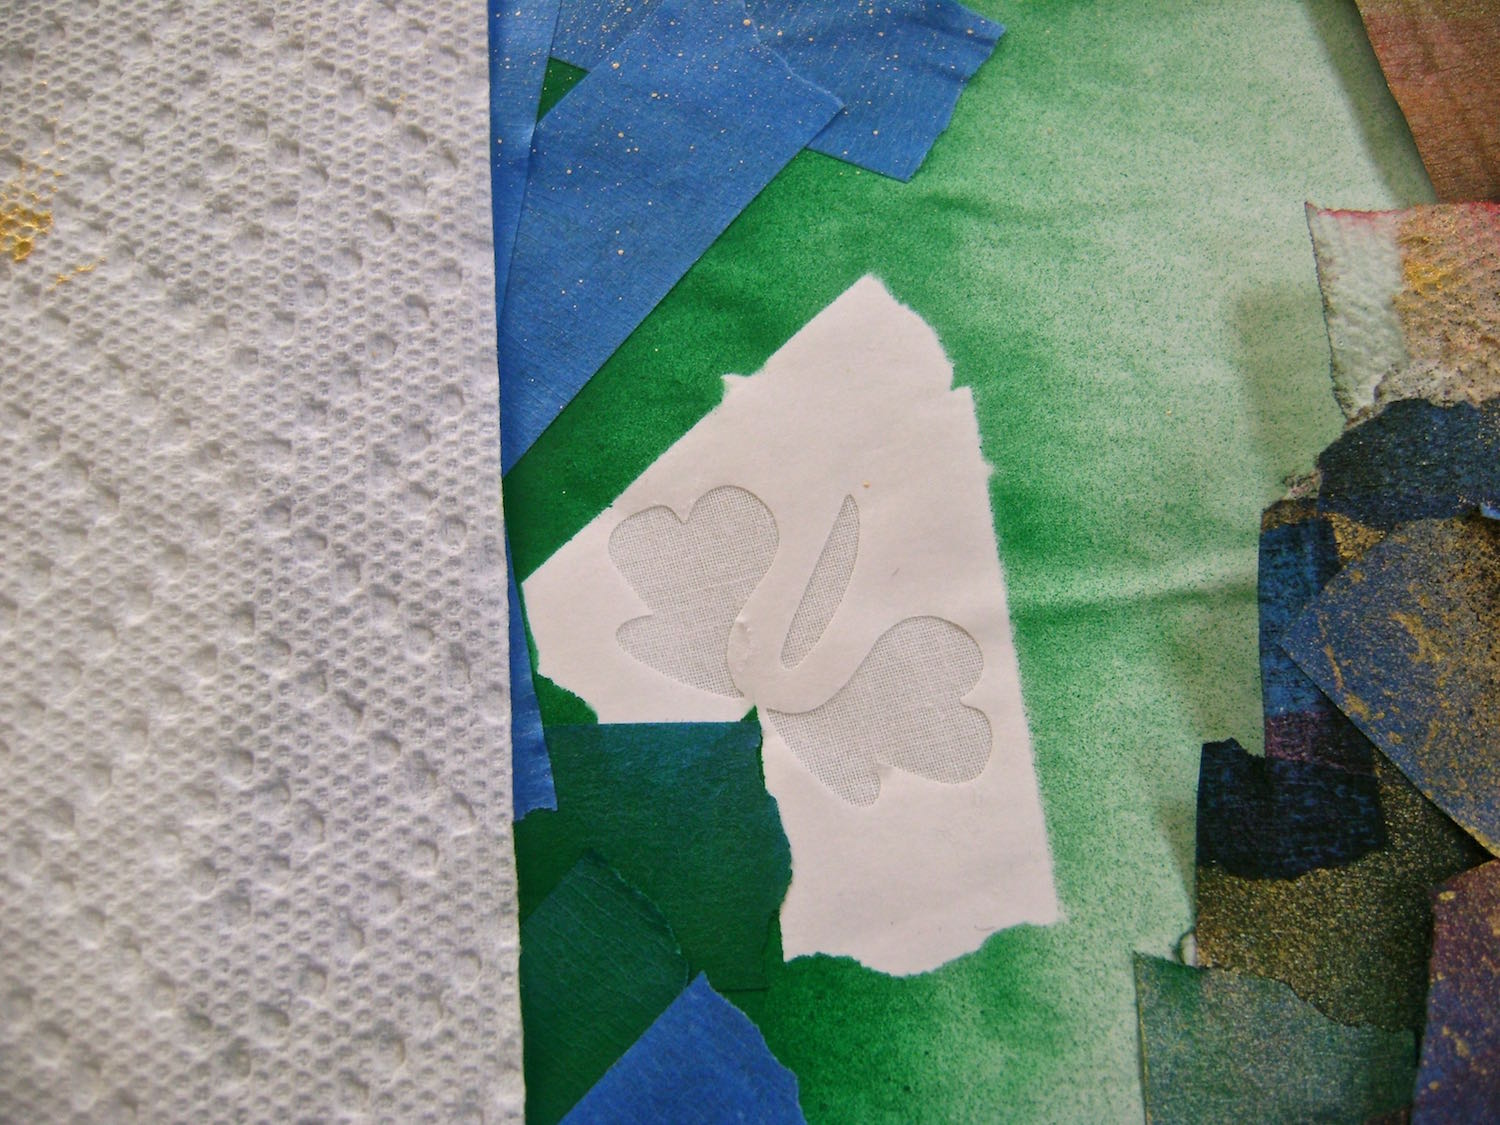 step 8 - Remove the tape from the flowers. Protect open green areas, then spray the flowers with Purple People Eater paint.  step 9 - When all the paint is dry, remove the tape and stencil.